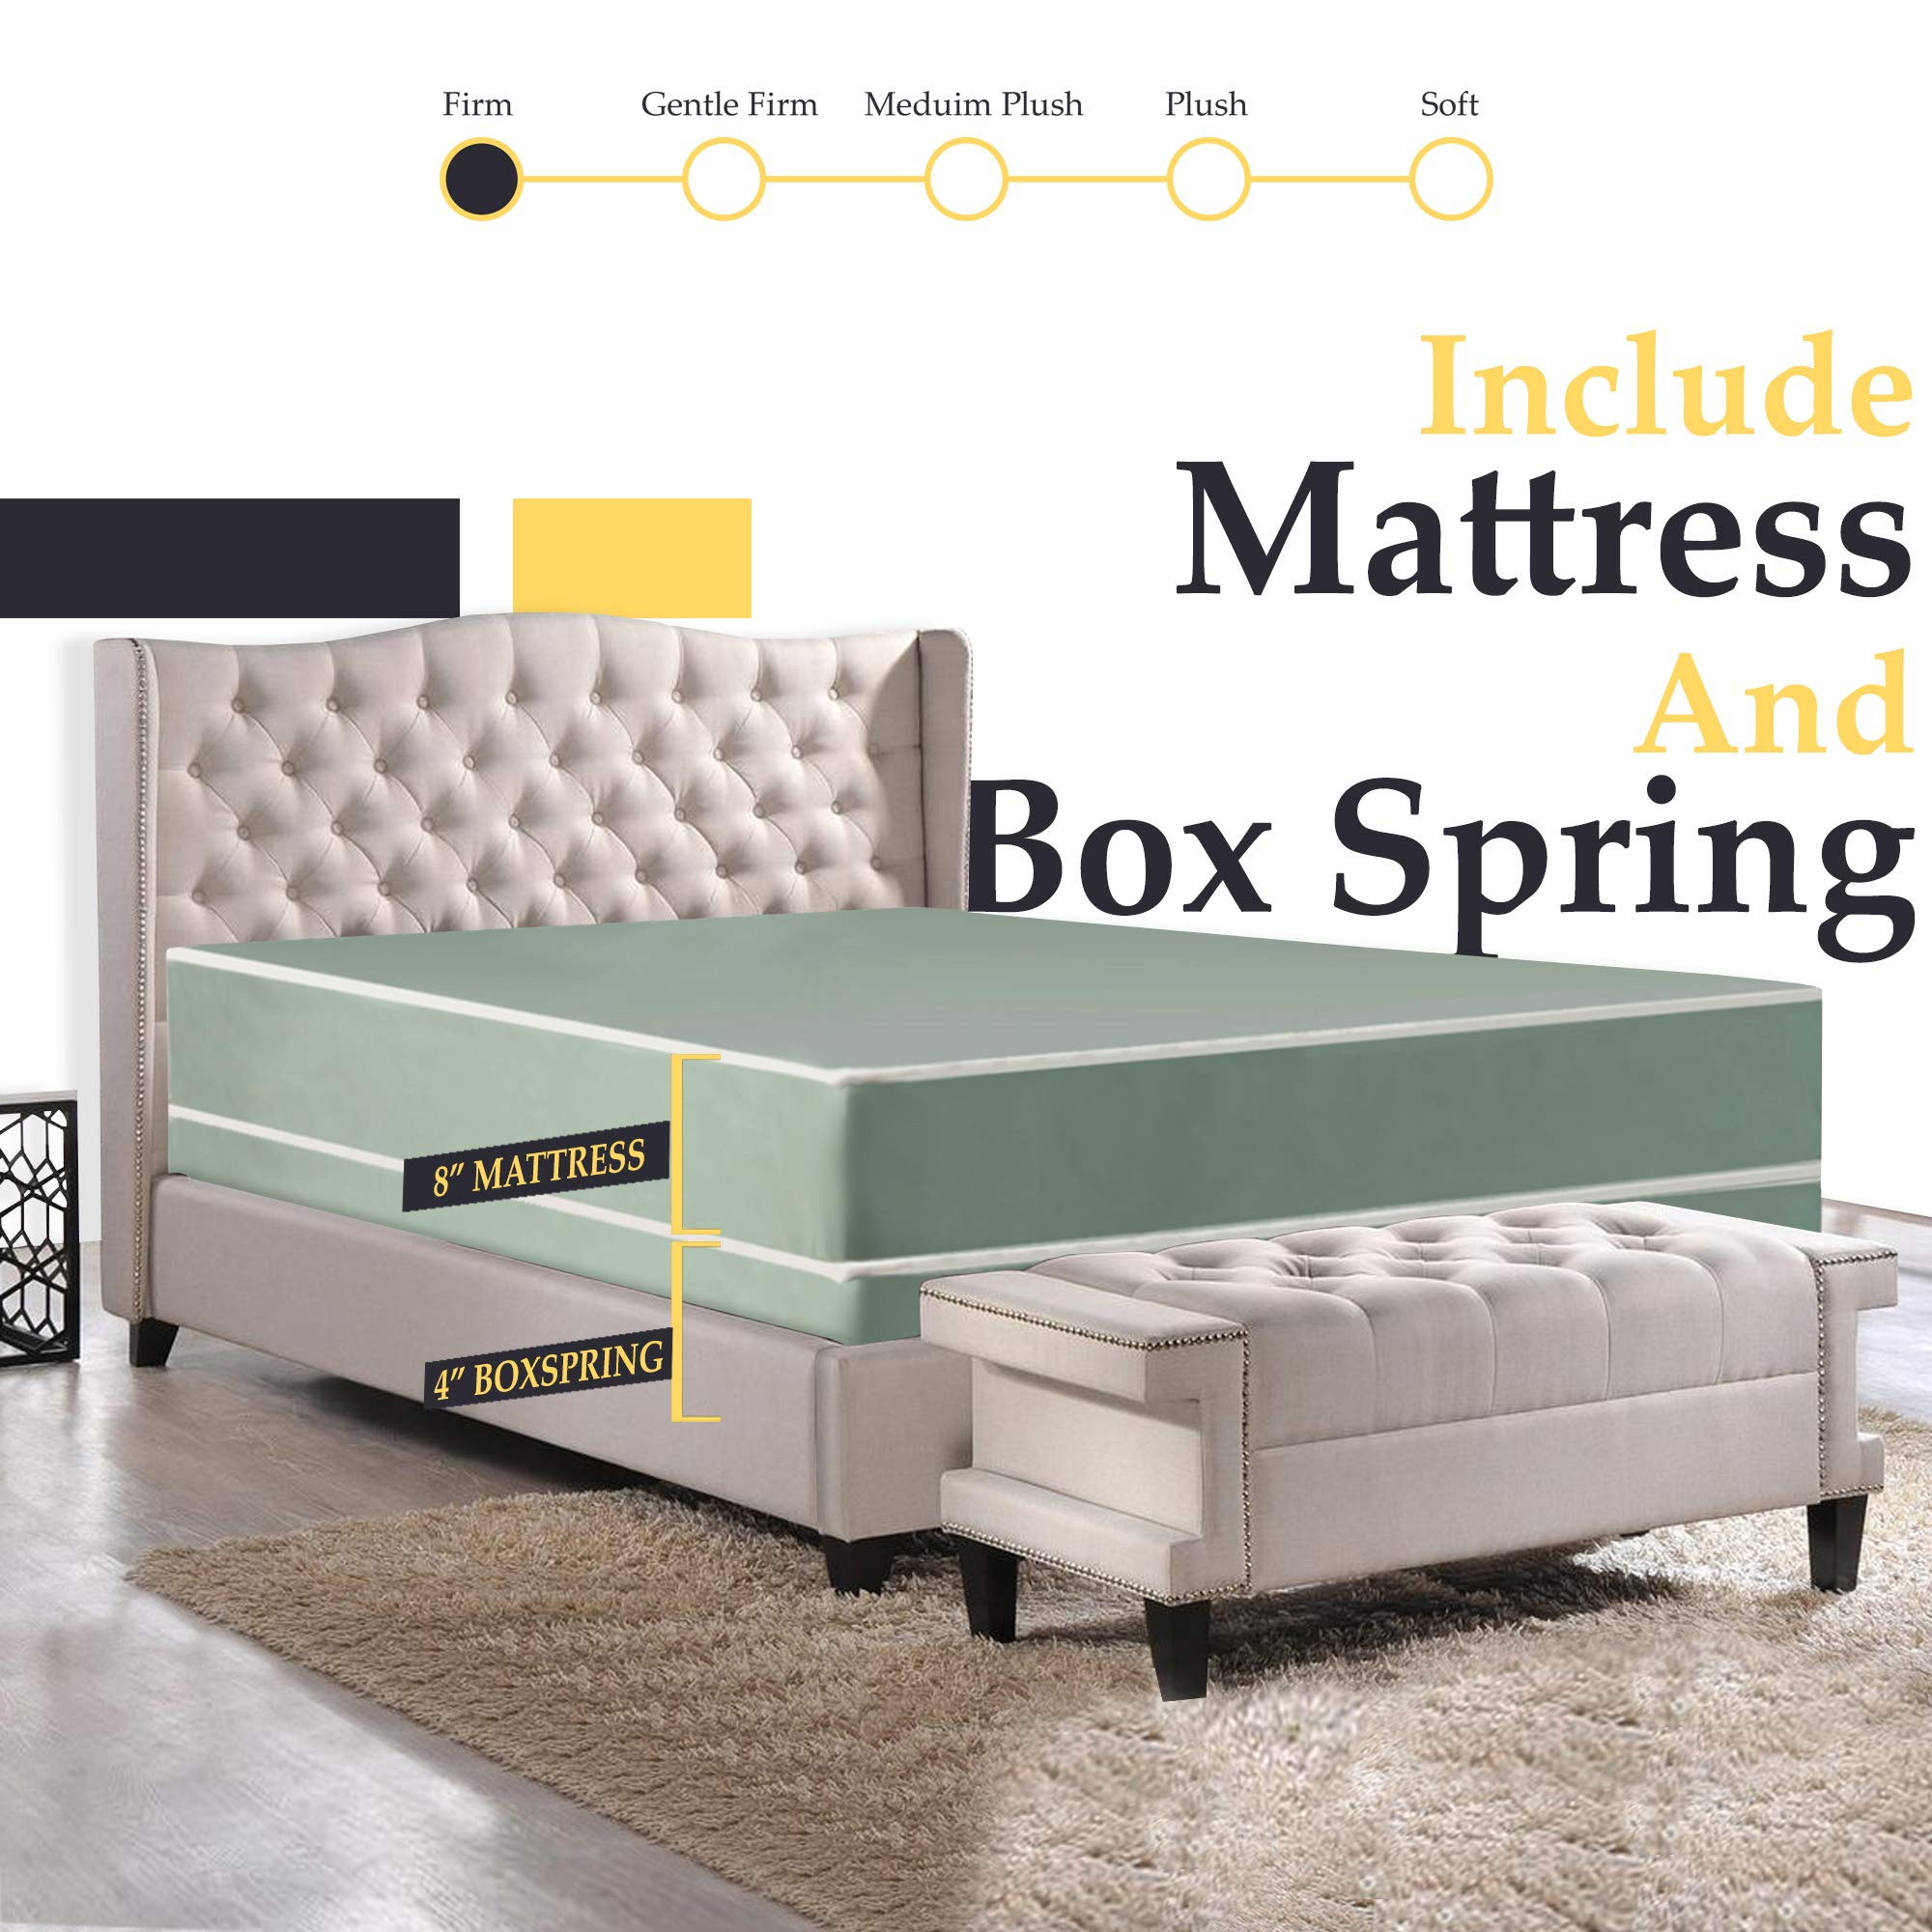 8-Inch Firm Double sided Tight top Innerspring Mattress And 4-Inch Fully Assembled Boxspring/Foundation Set by Nutan